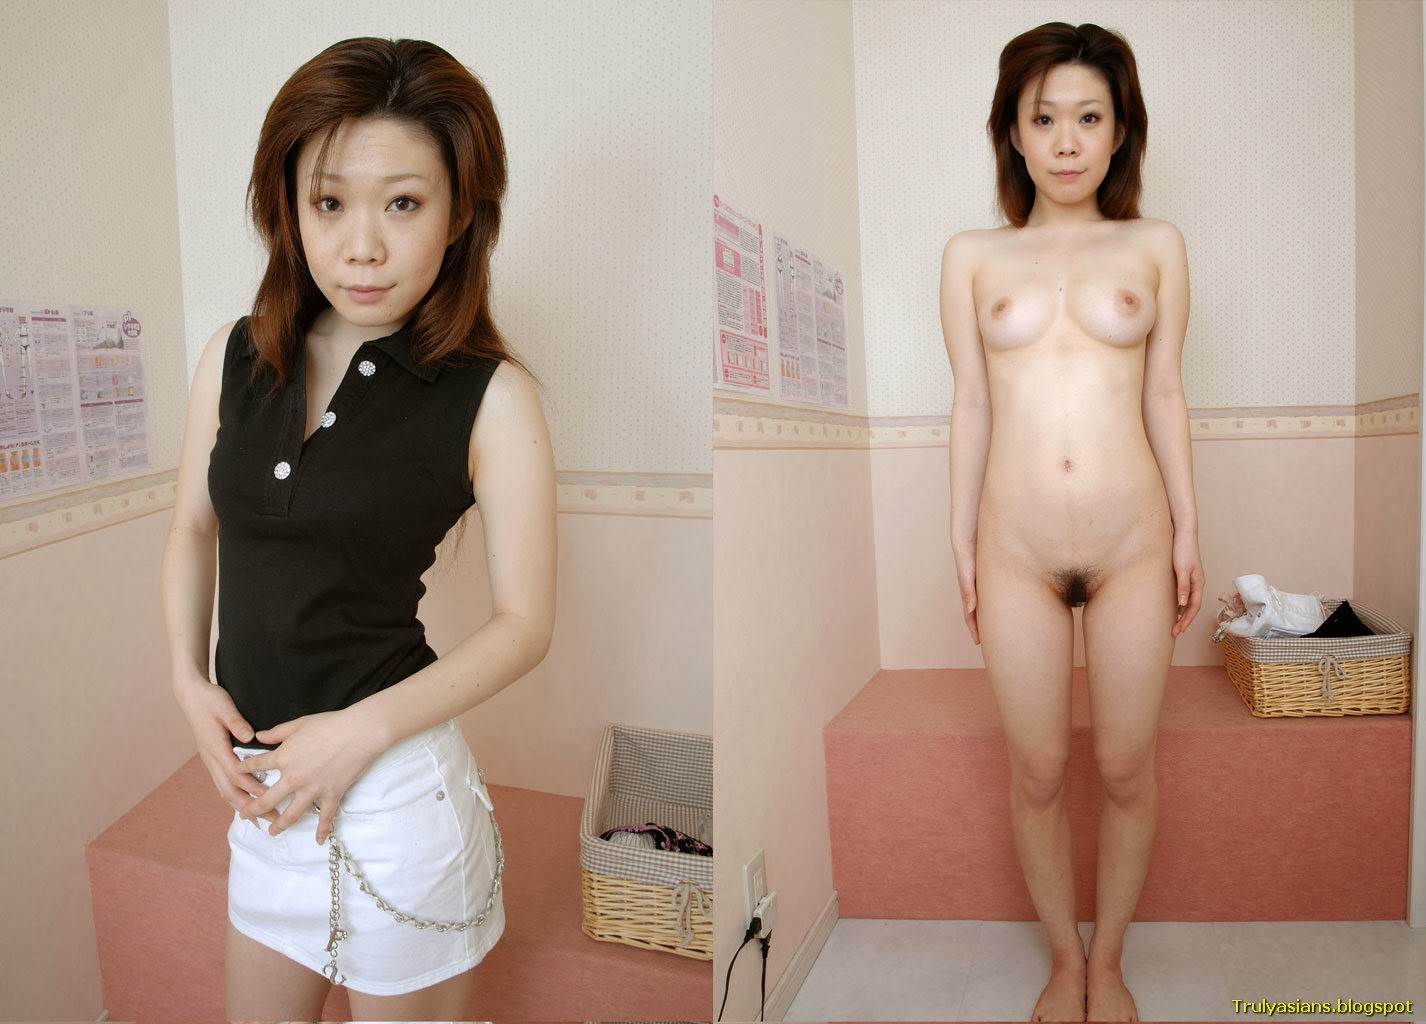 Sex story cute asian fucked clothed unclothed tiny tit